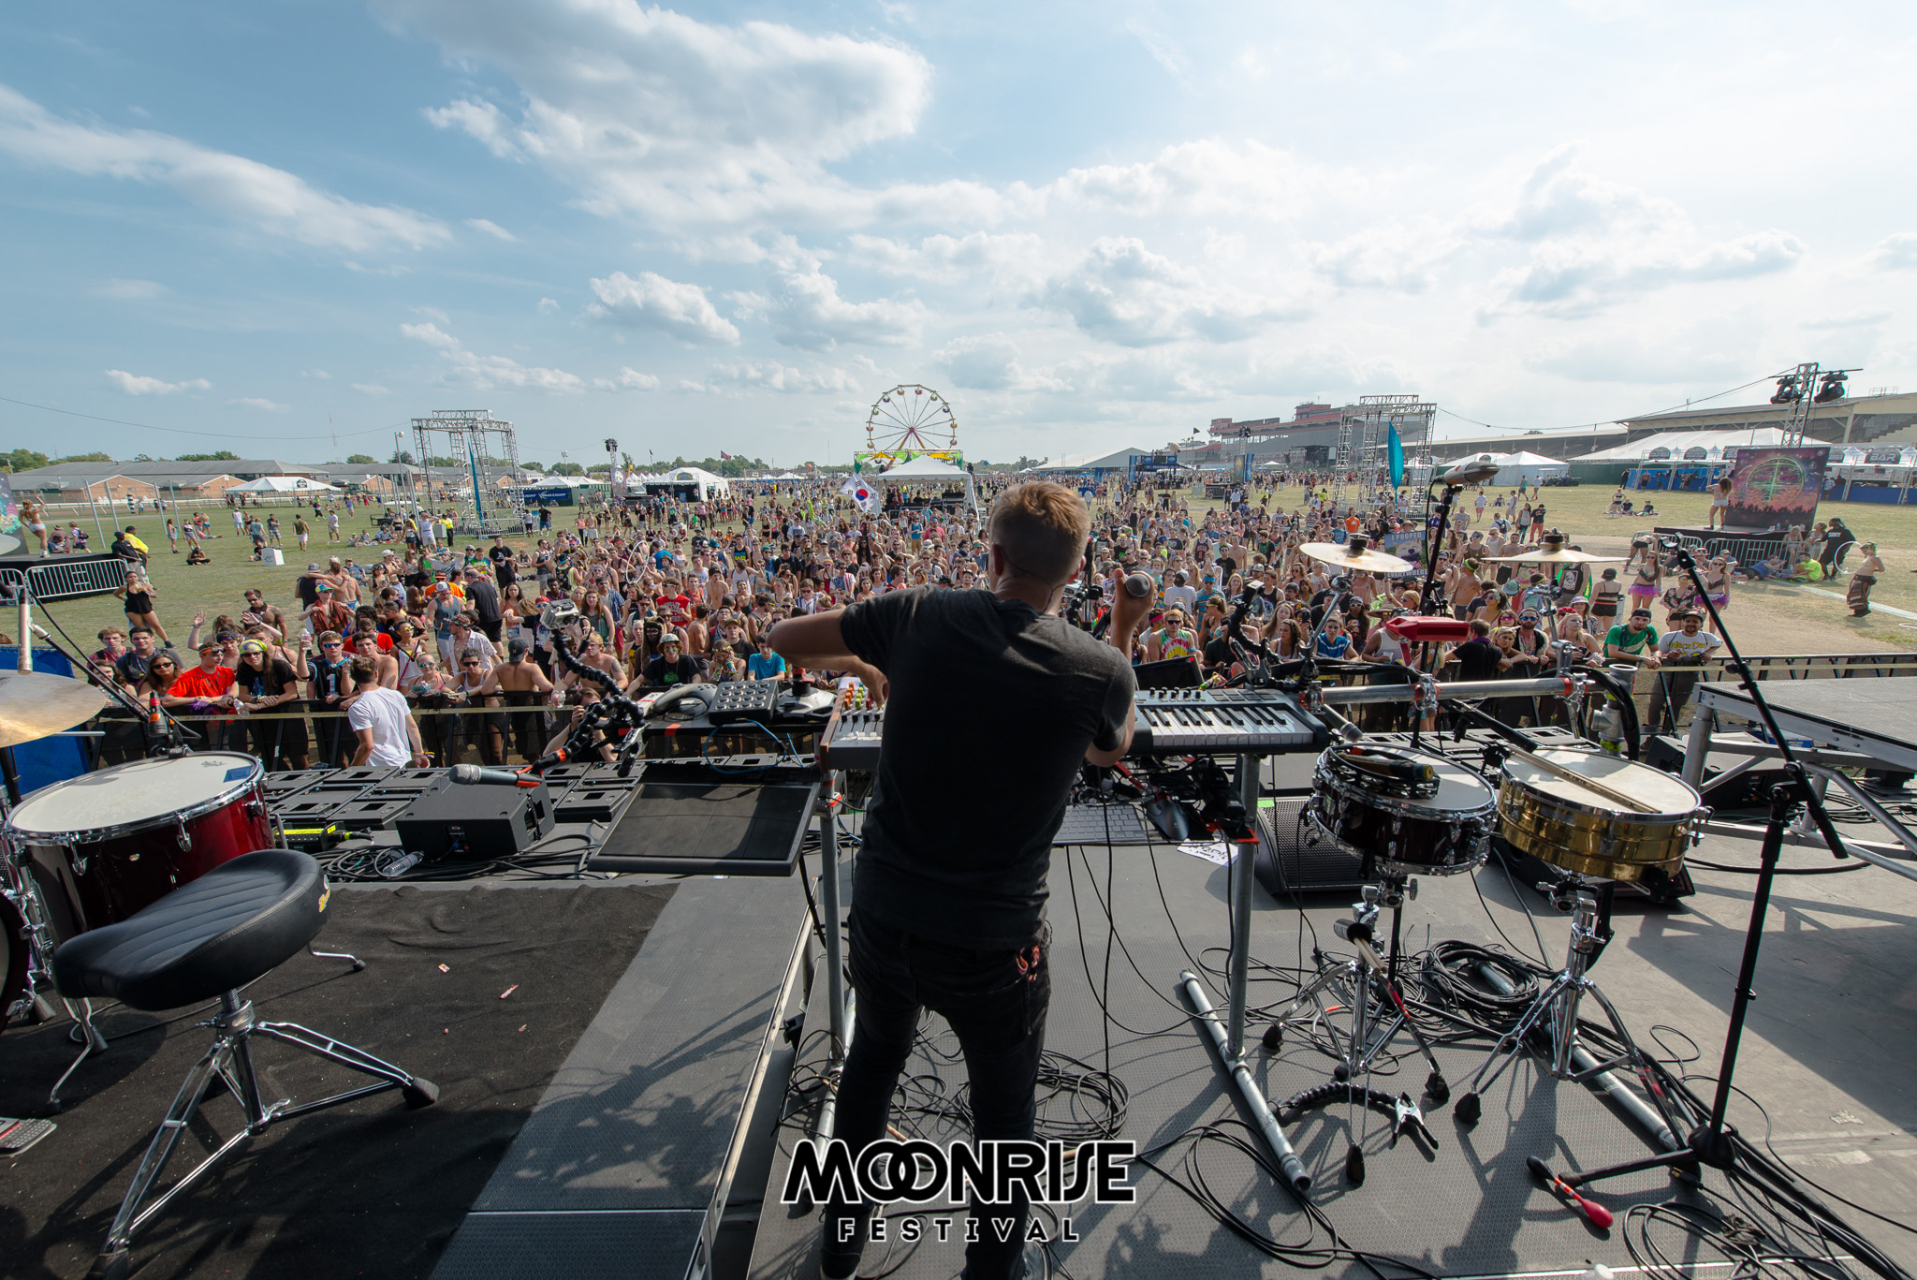 Moonrise_day2-29